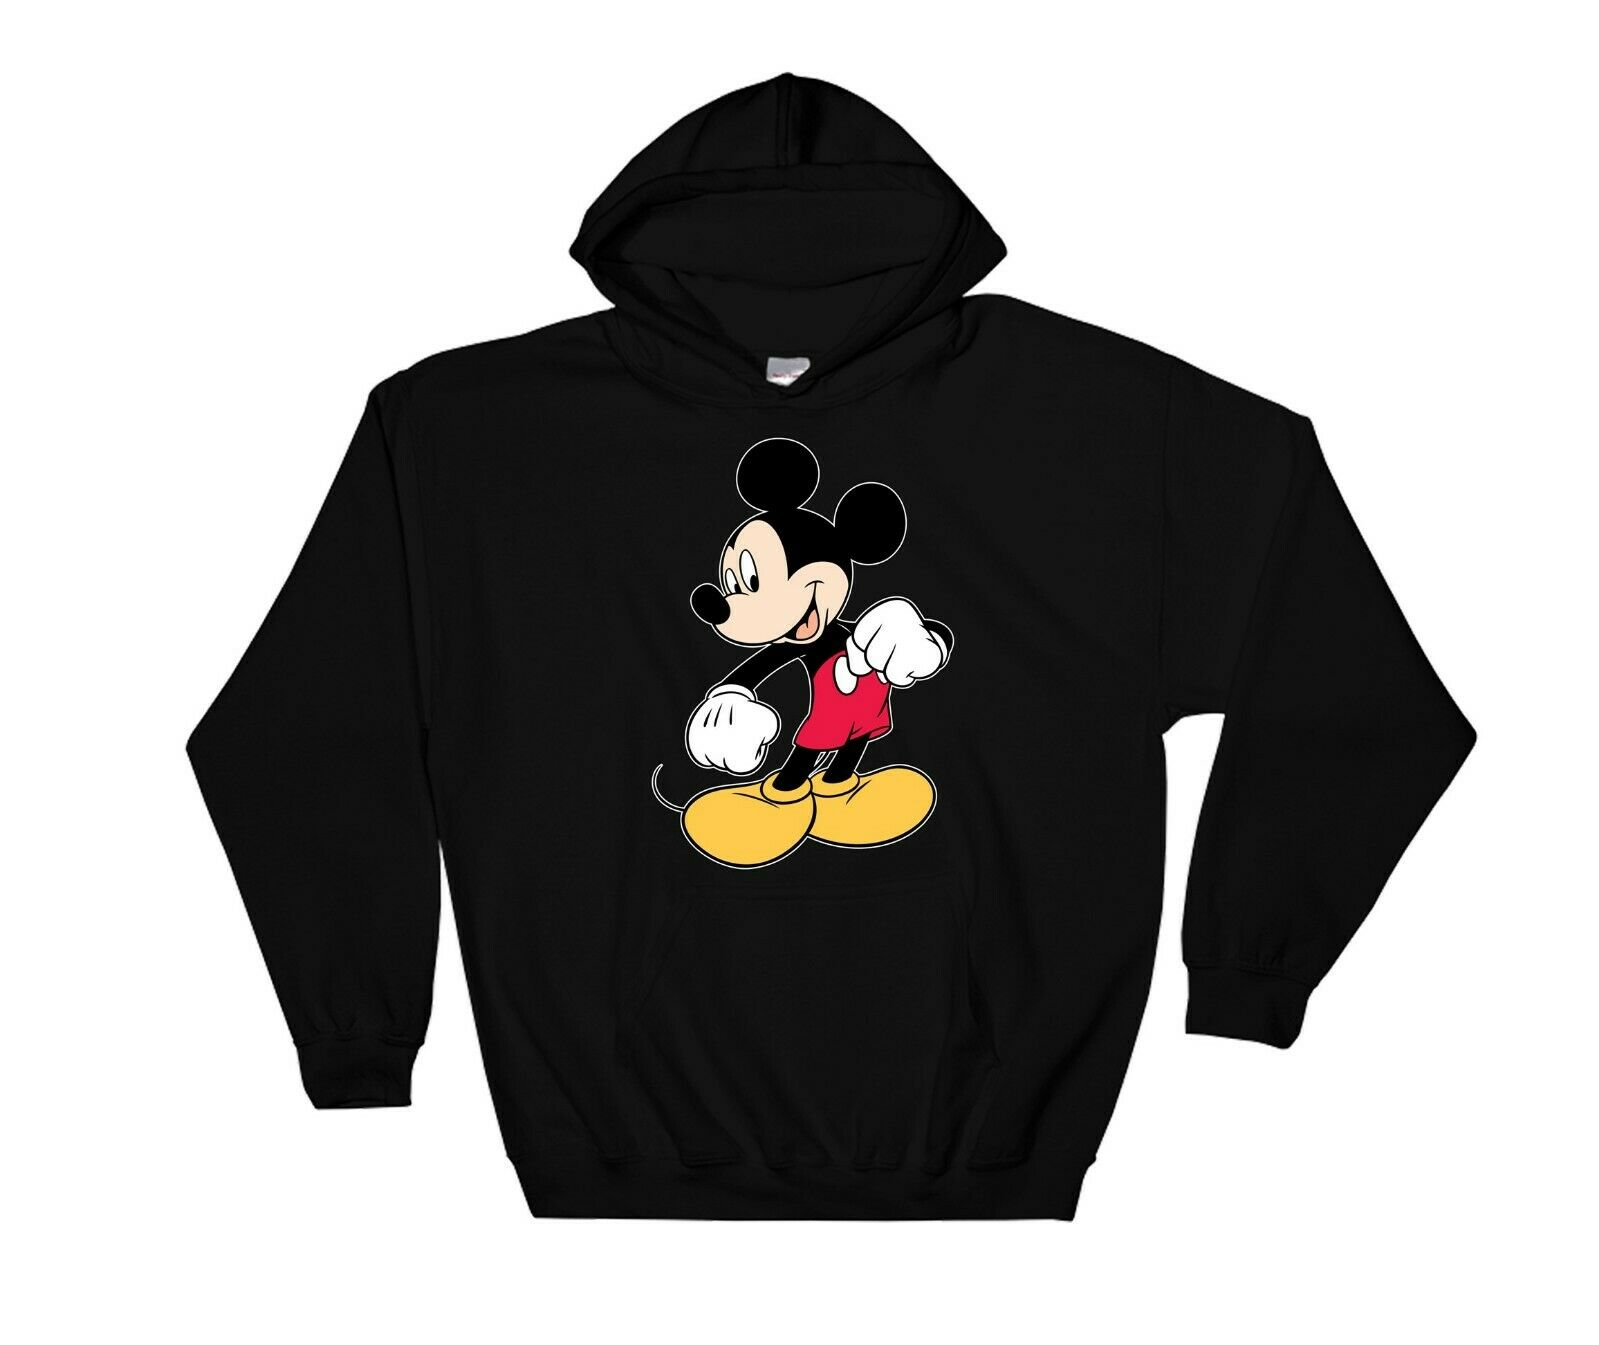 Mickey Mouse Standing Funny Hoodie Cool Gift Sweatshirt Jumper Pullover 4168